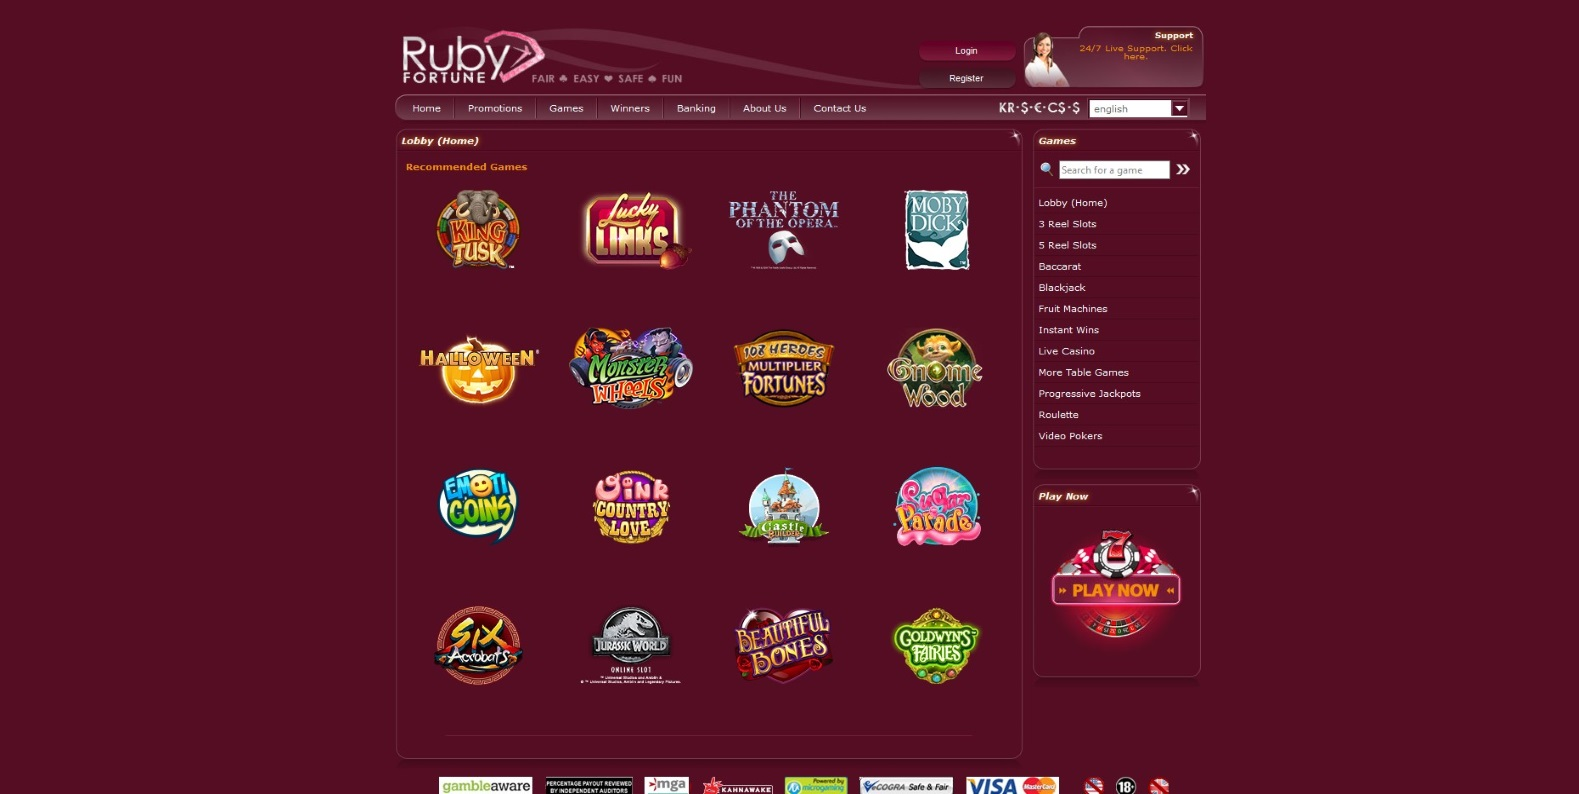 All Casino Games at Ruby Fortune Casino